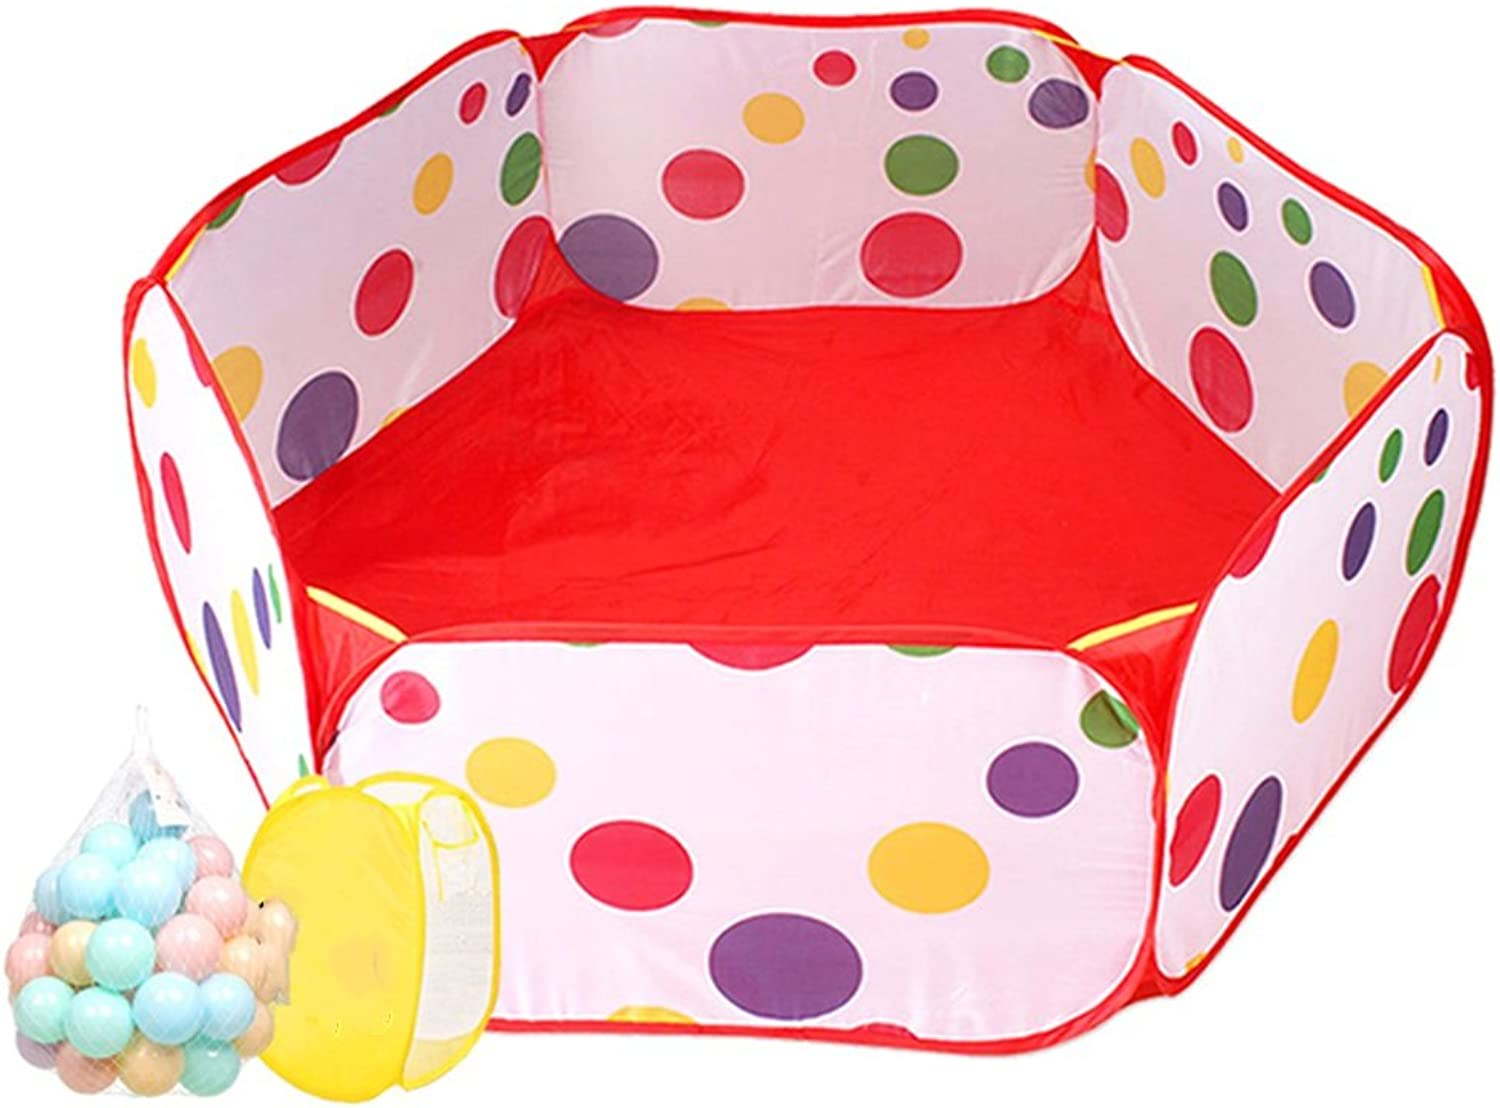 Portable Playpen Toddler Play Tent Sea Ball Pool, Indoor Outdoor Baby Safety Play Center Yard, Red Ball Pit (Size   50 Balls)